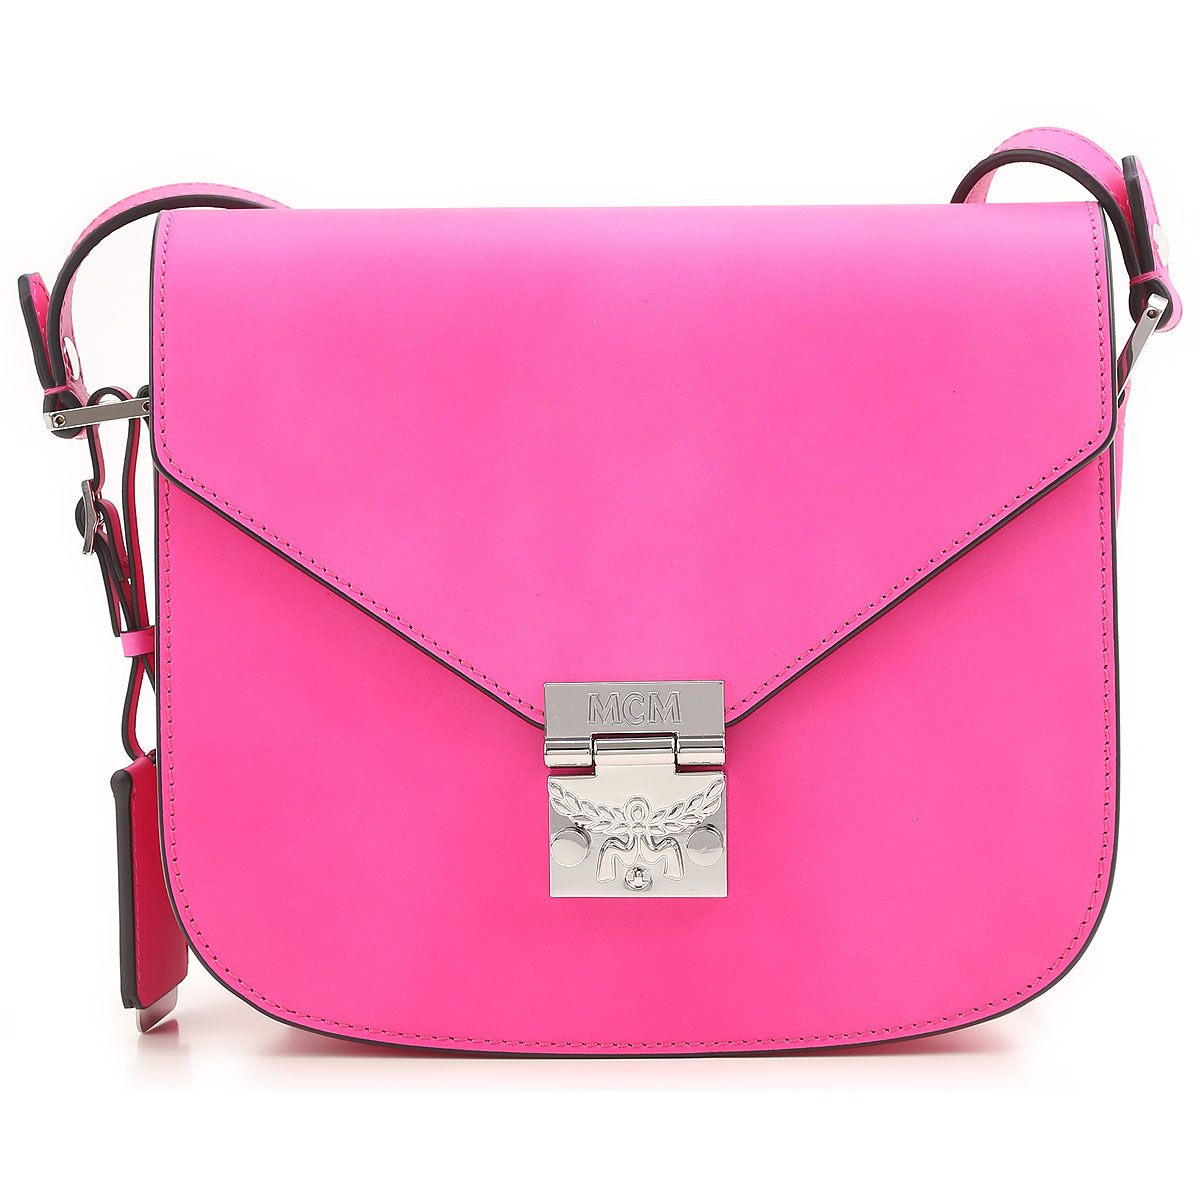 Image of MCM Shoulder Bag for Women On Sale in Outlet, fuxia, Leather, 2017